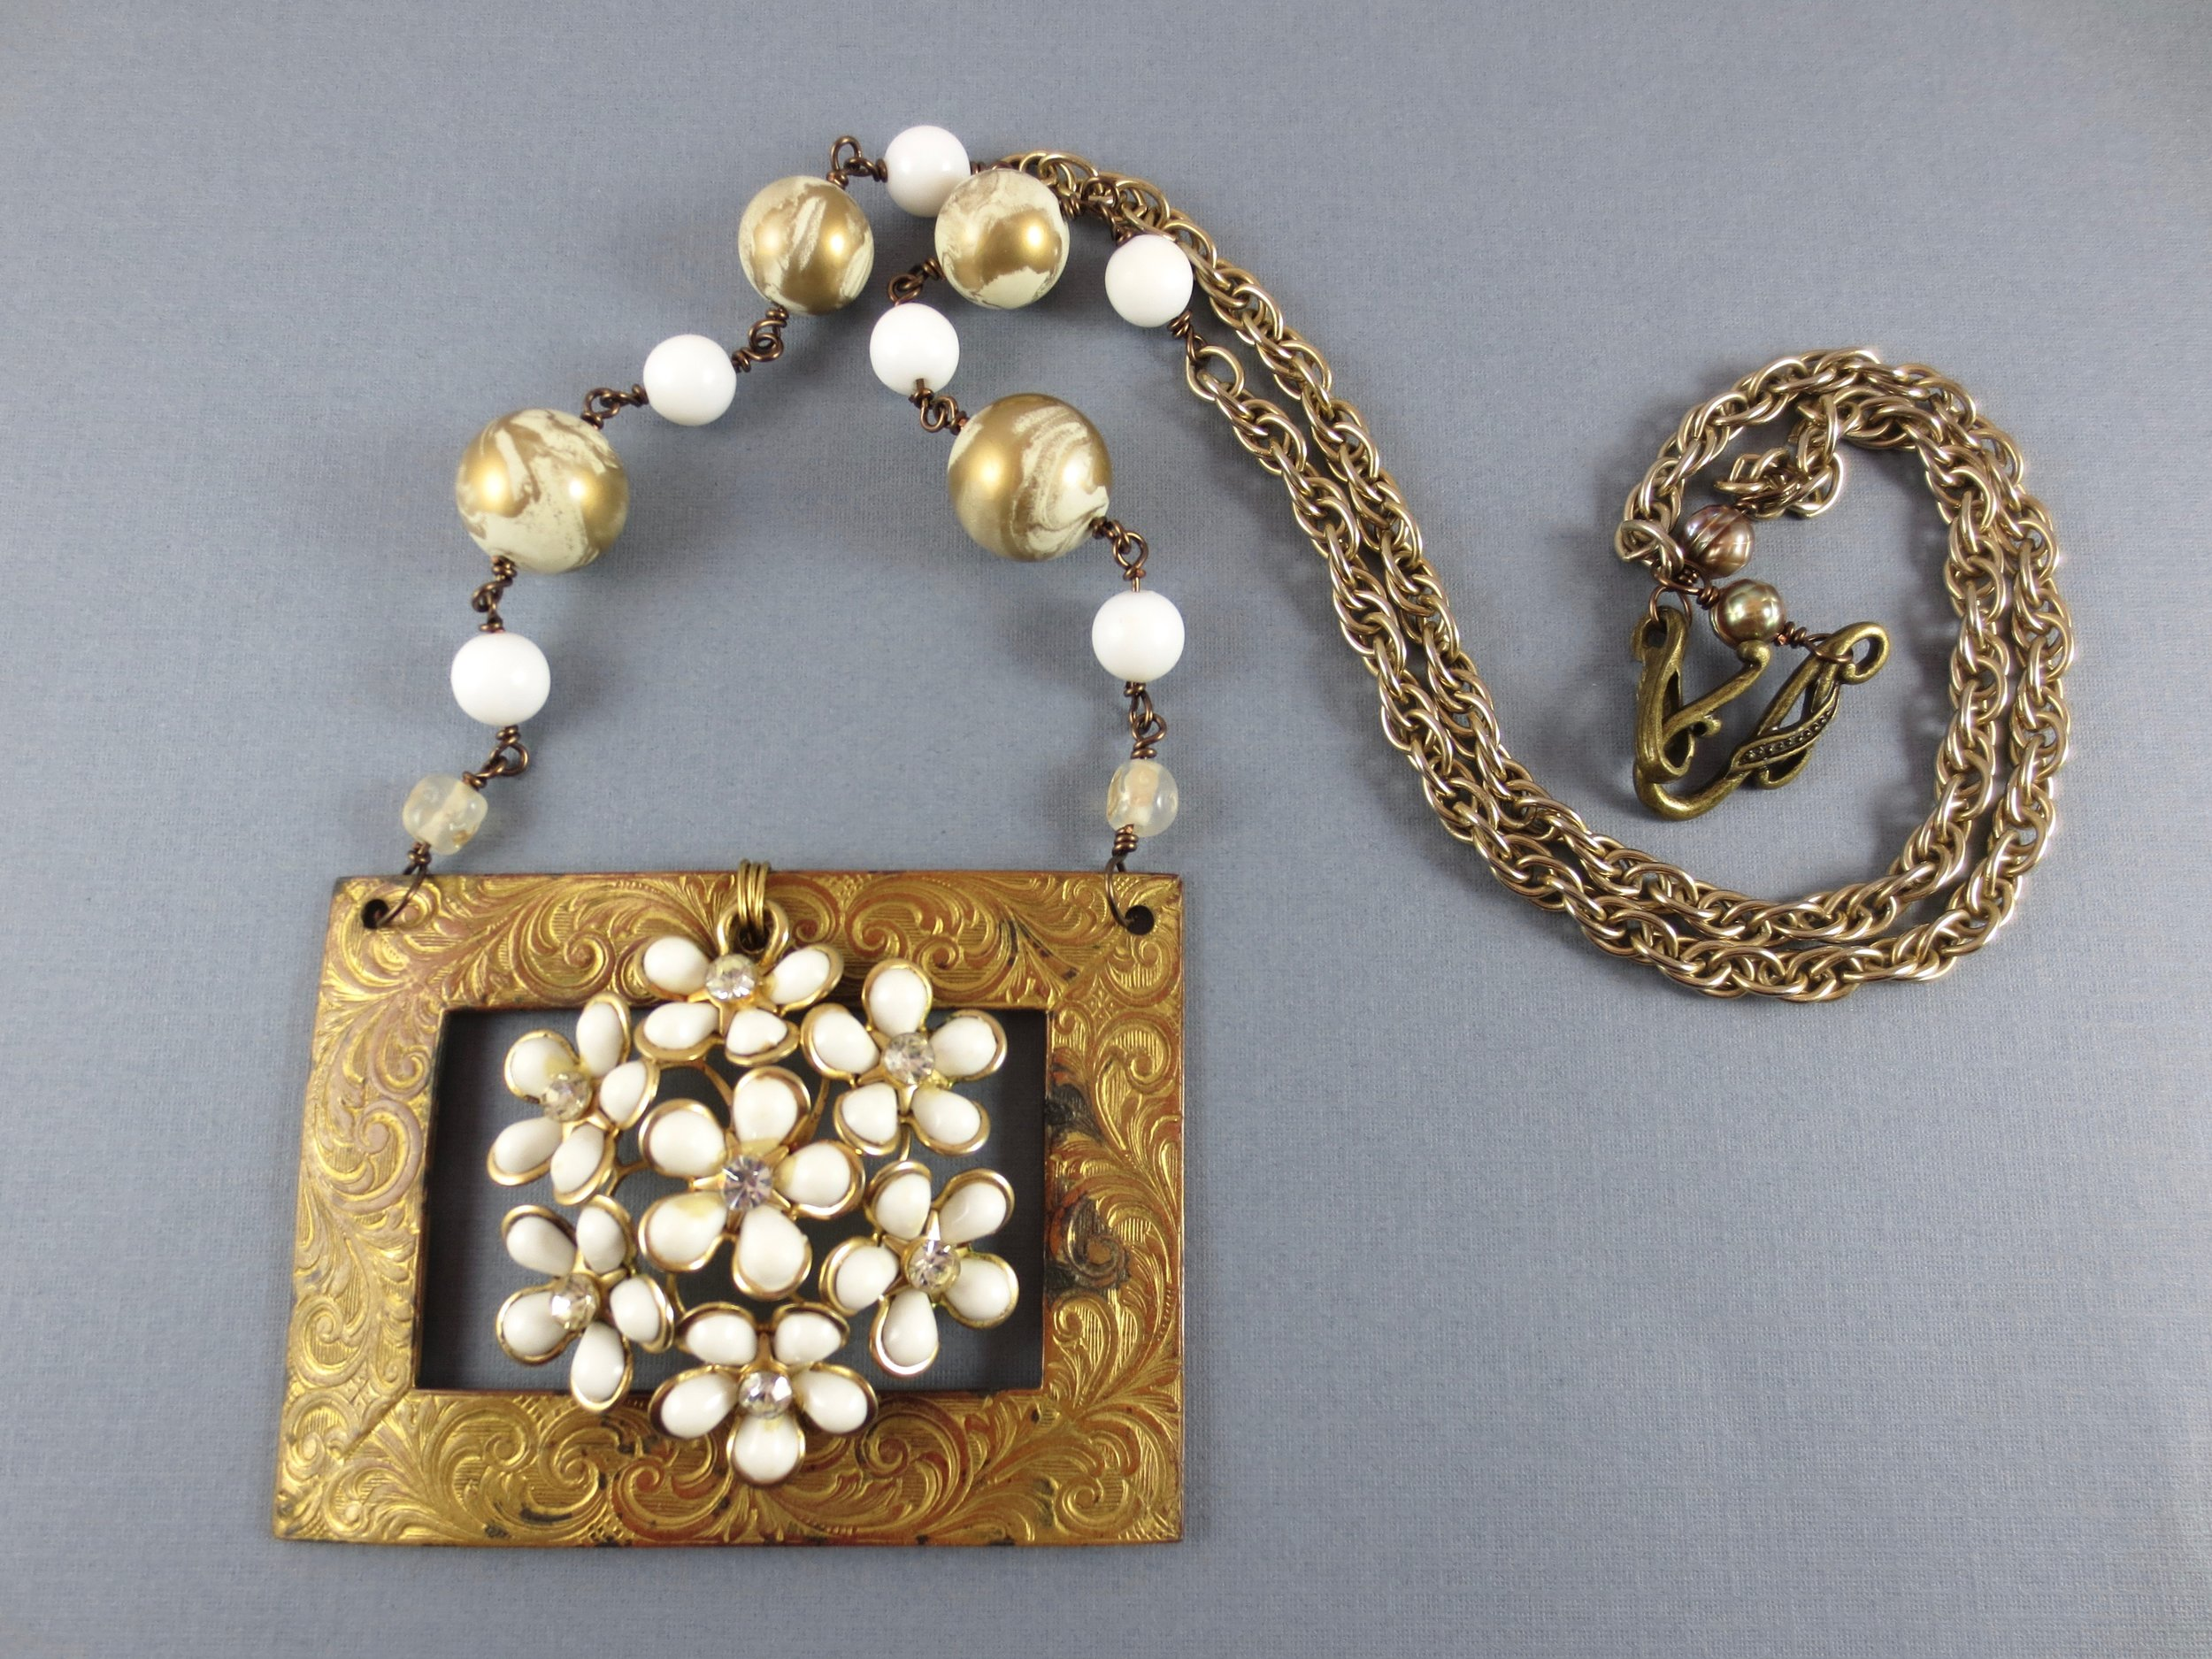 1950s, 1960s, and 1970s jewelry parts were assembled to make this necklace.